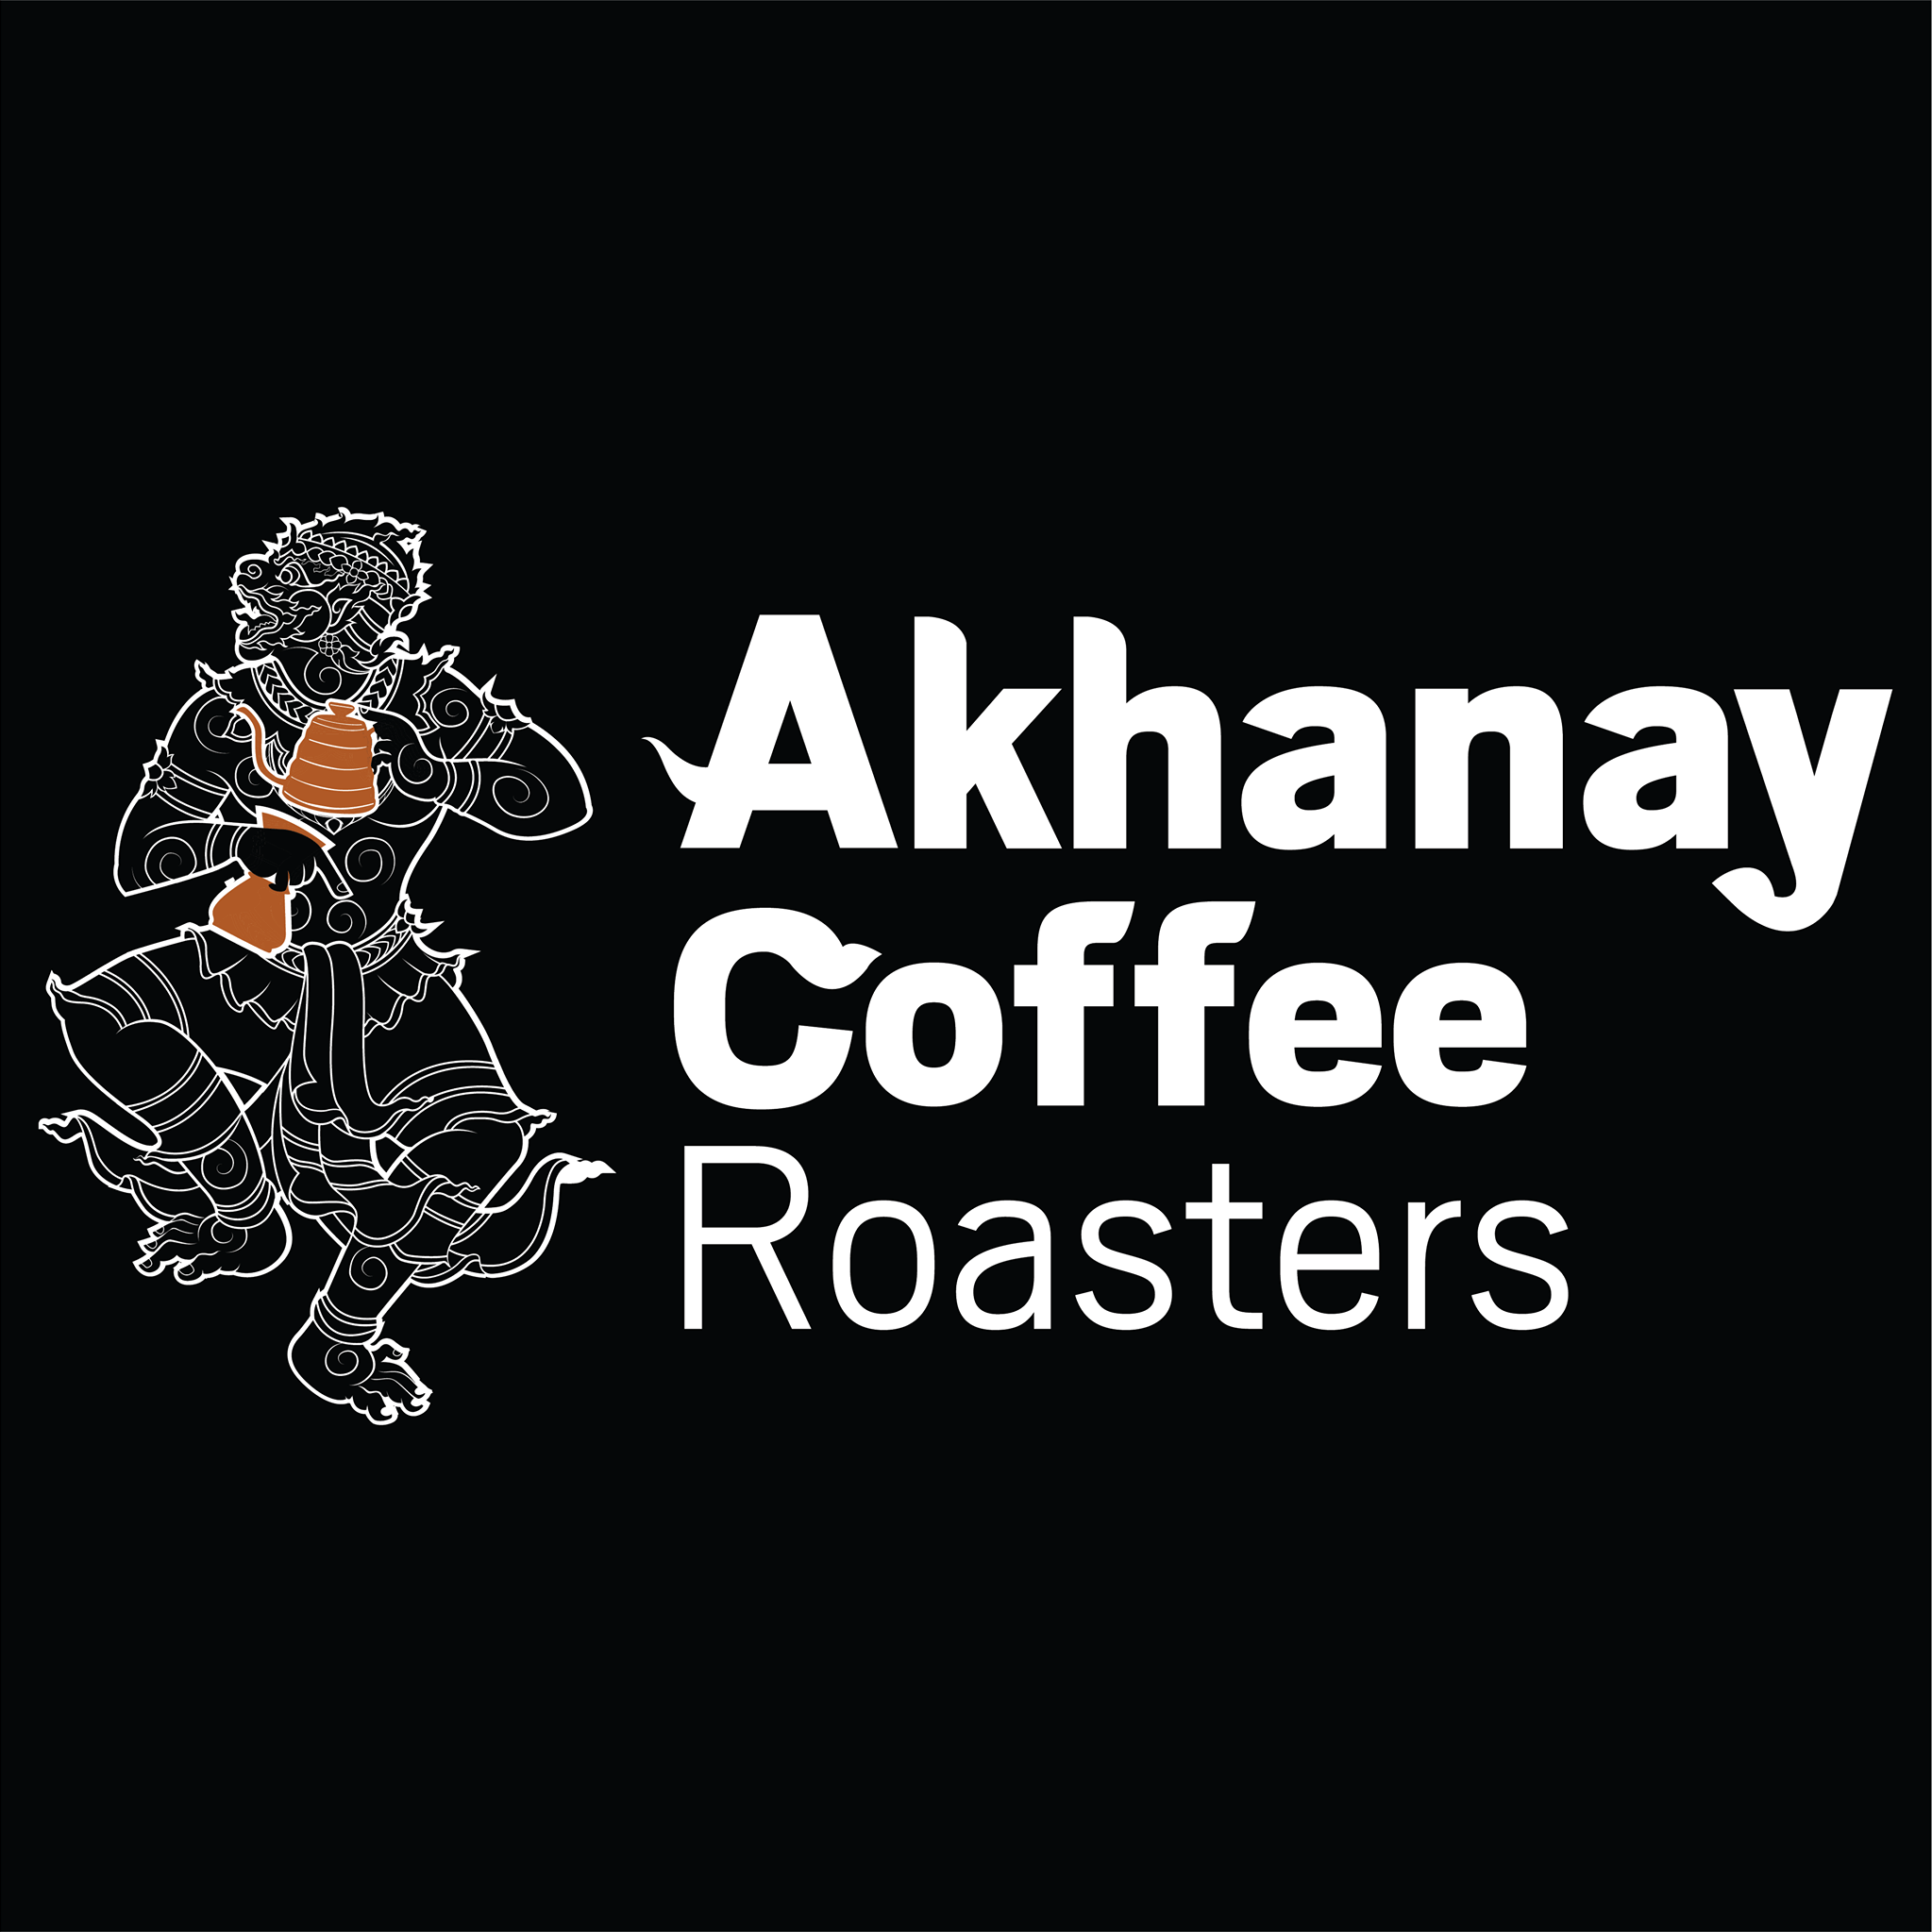 Akhanay Coffee